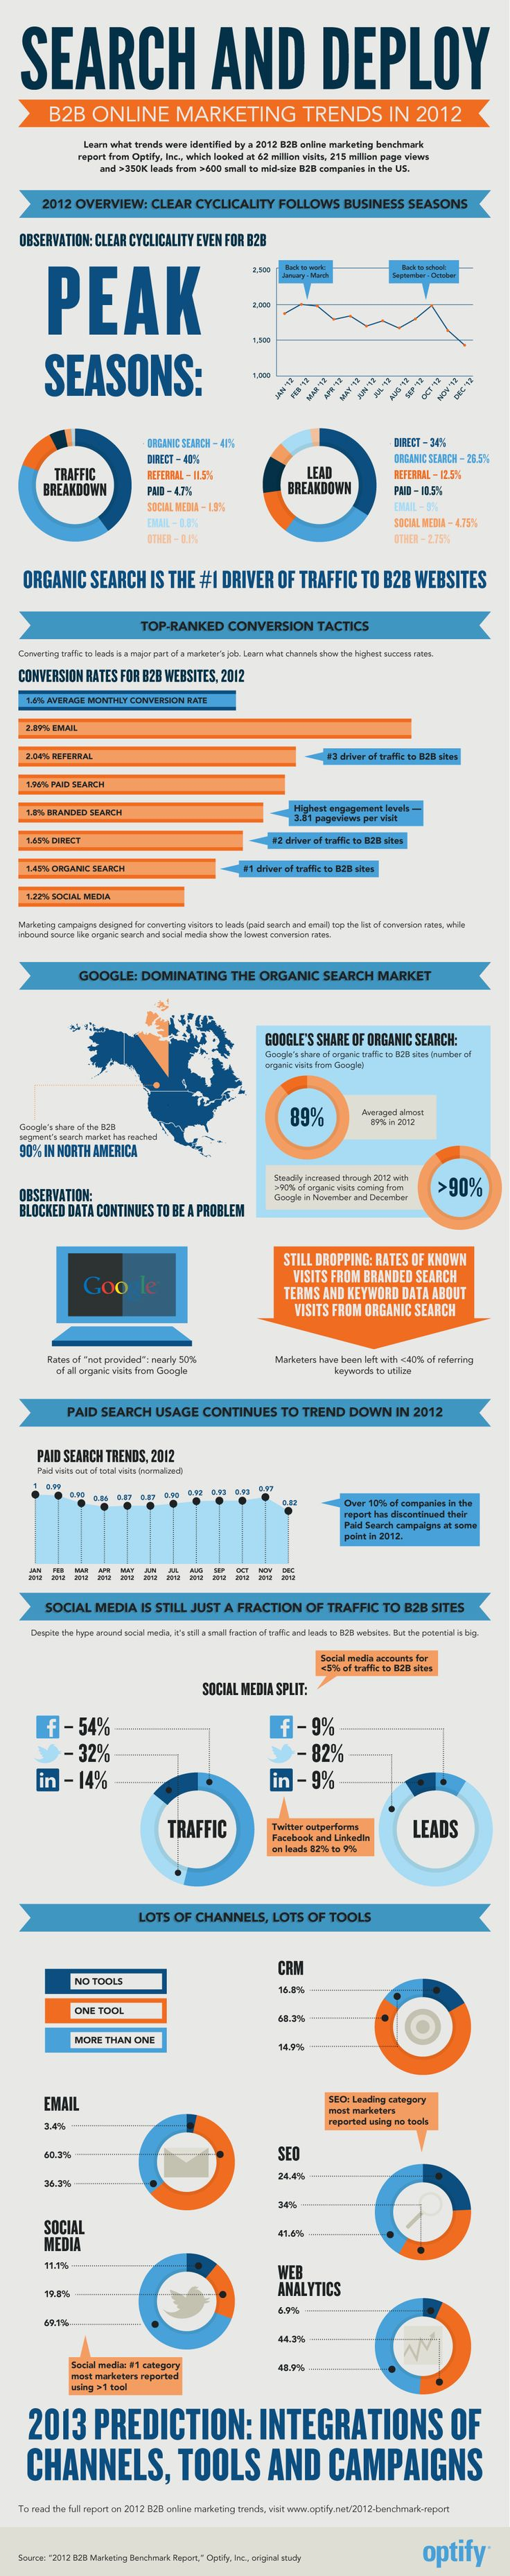 B2B #Marketing Trends in 2012 #Infographic: Online Marketing, Digital Marketing, Marketing Trends, B2B Marketing, Marketing Infographics